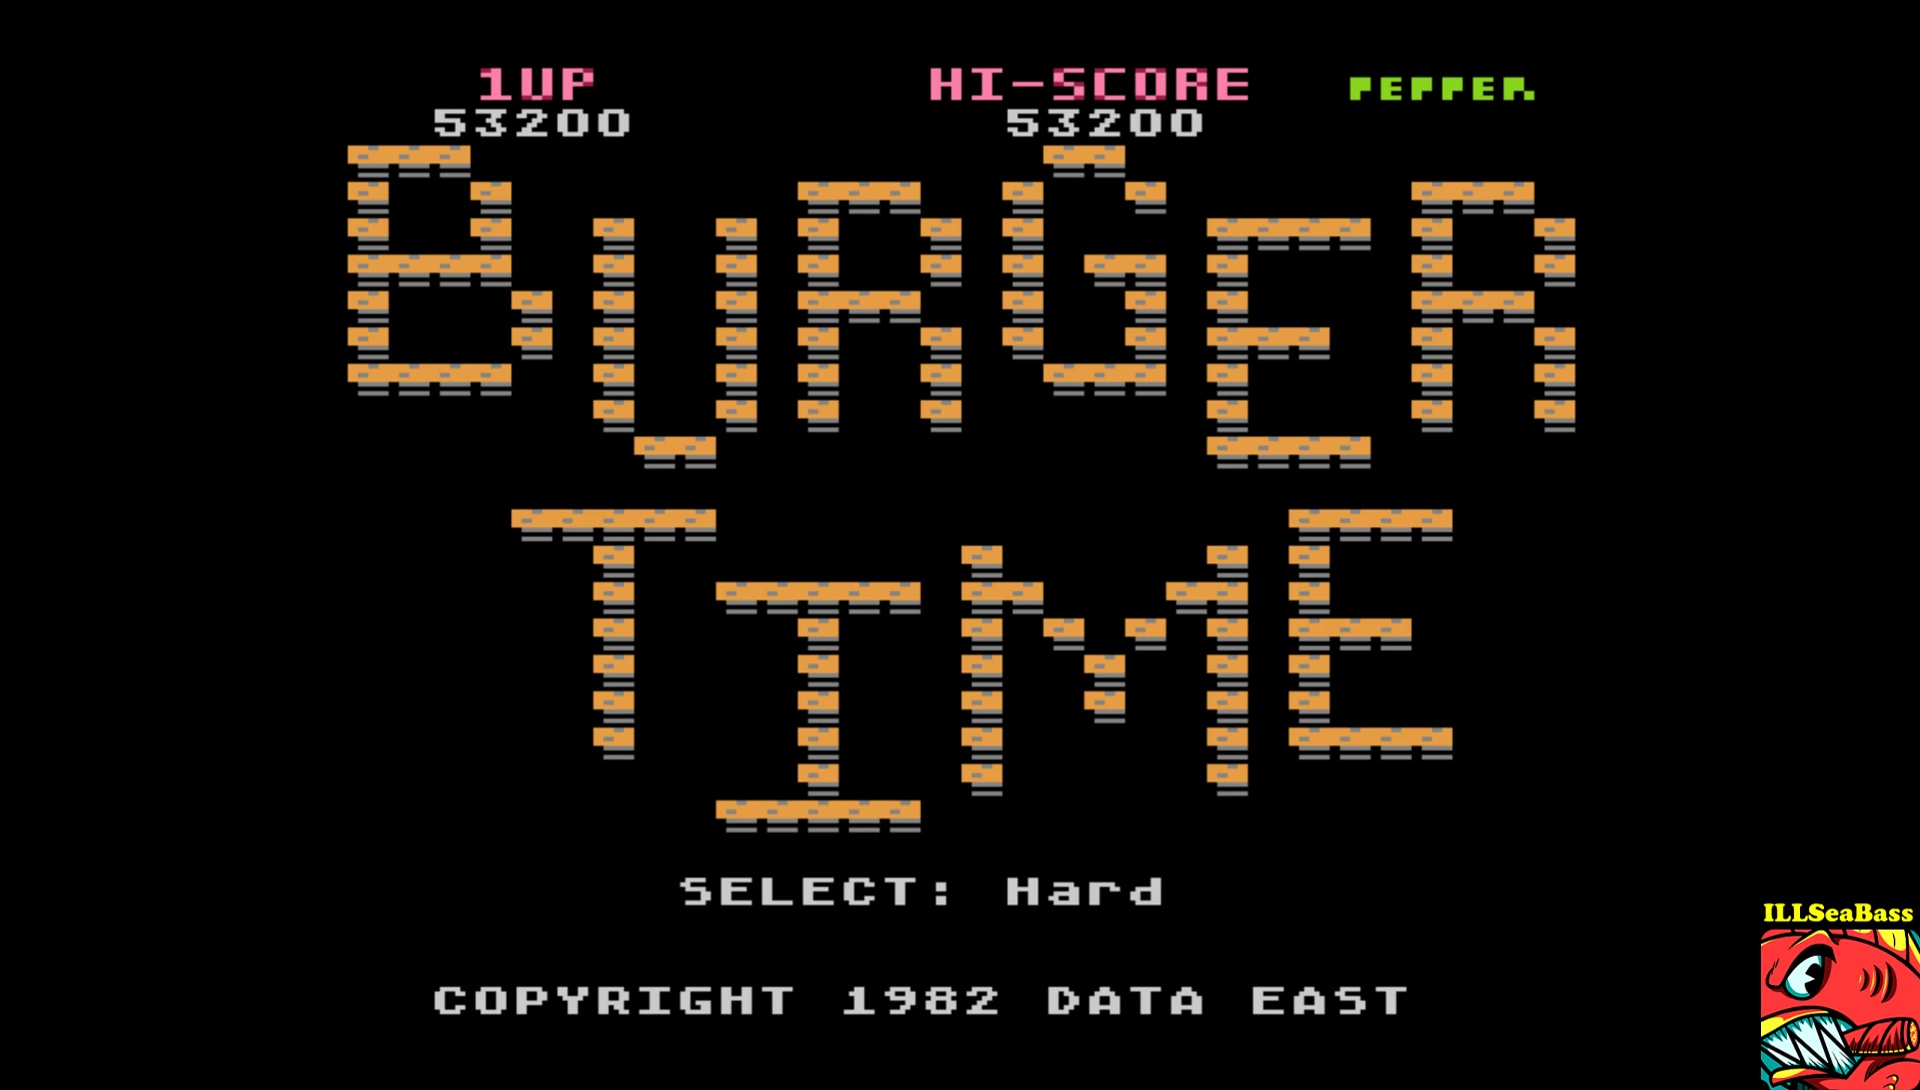 ILLSeaBass: Burger Time (5200) [Hard] (Atari 400/800/XL/XE Emulated) 53,200 points on 2017-06-05 00:46:44